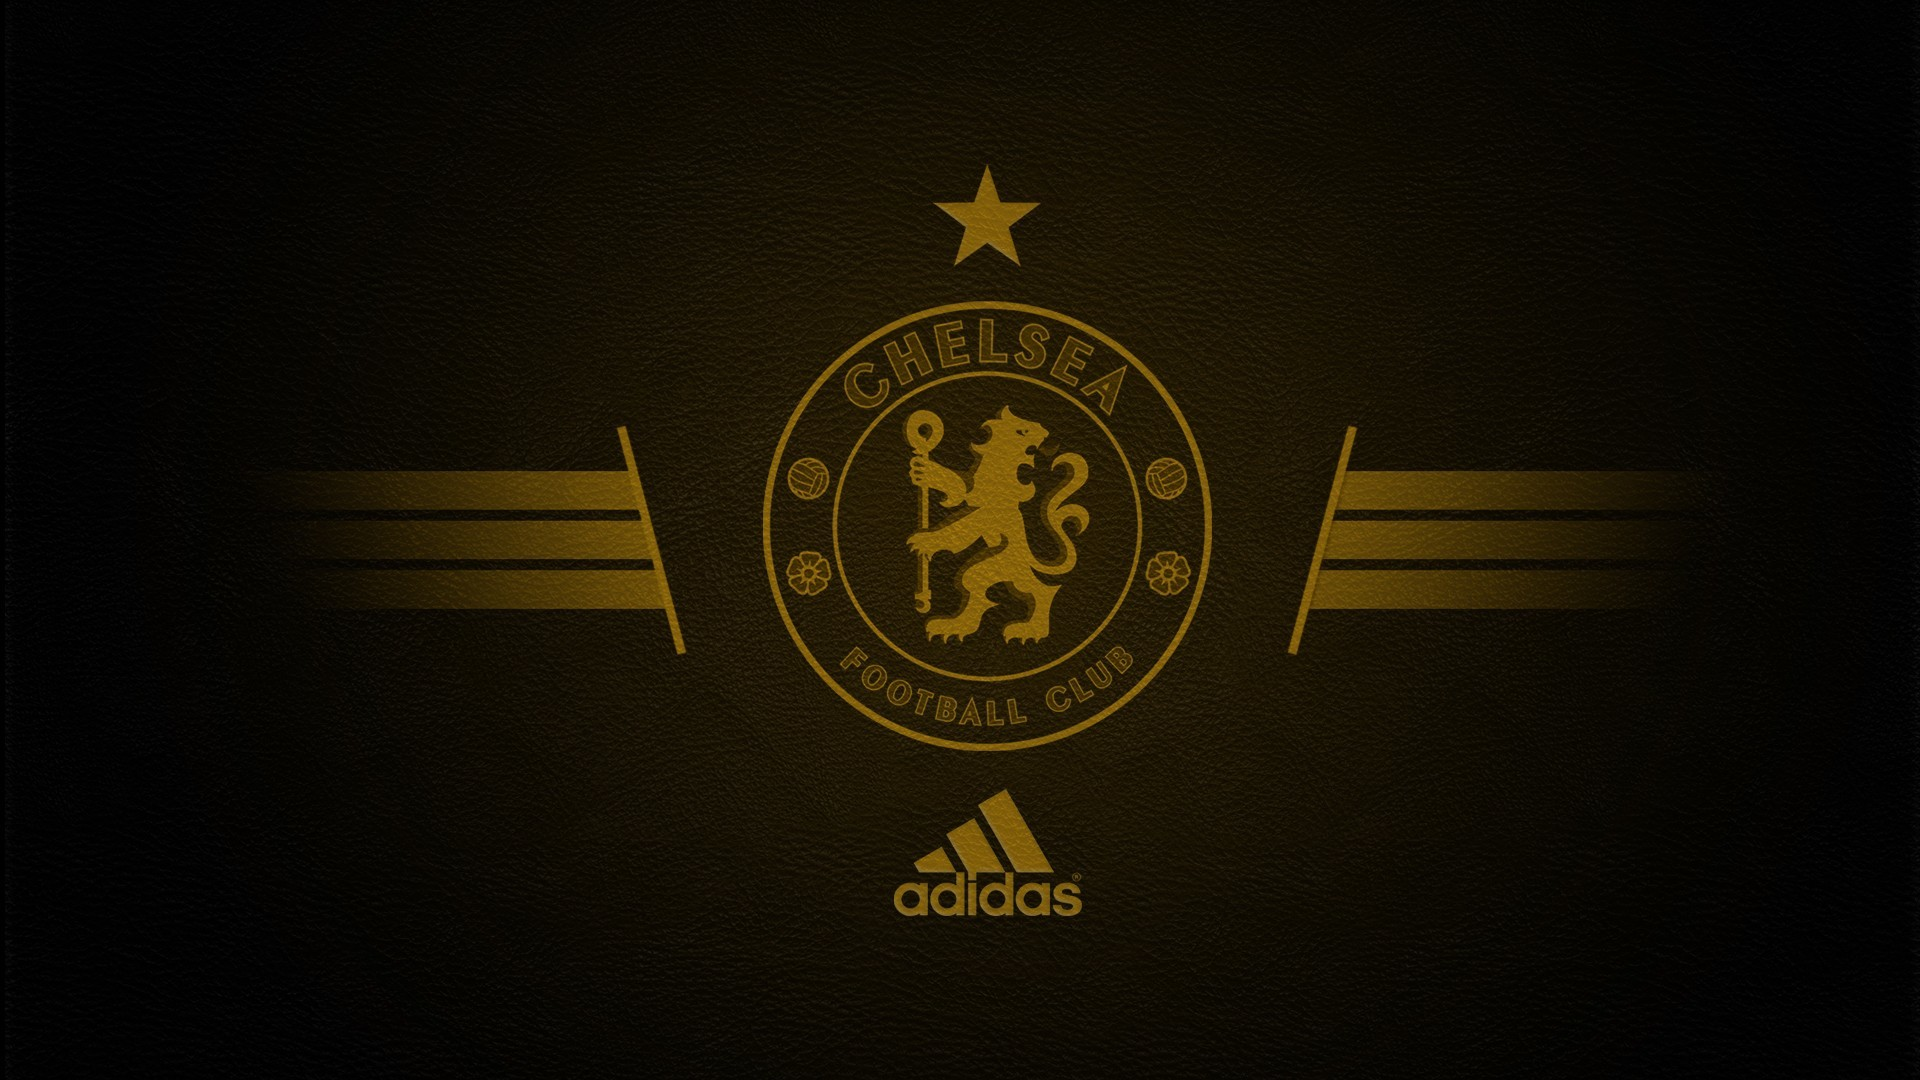 1920x1080 Chelsea Football Club Wallpaper